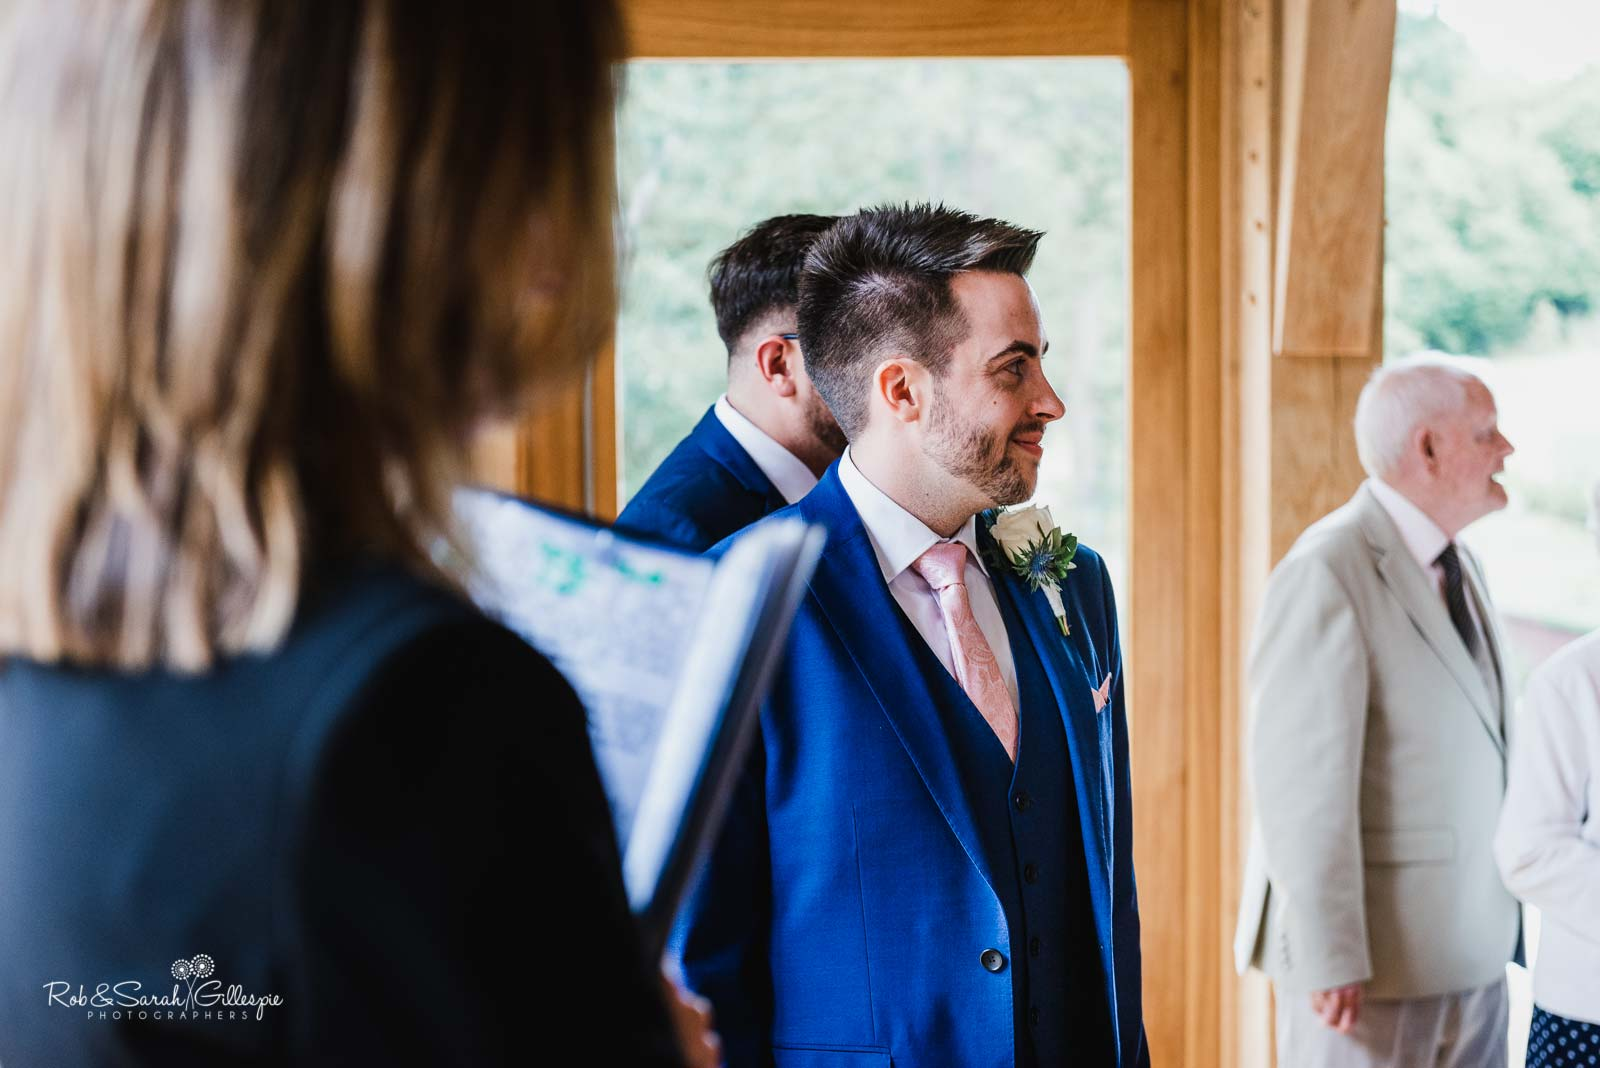 Groom smiling as bride arrives at The Mill Barns wedding ceremony